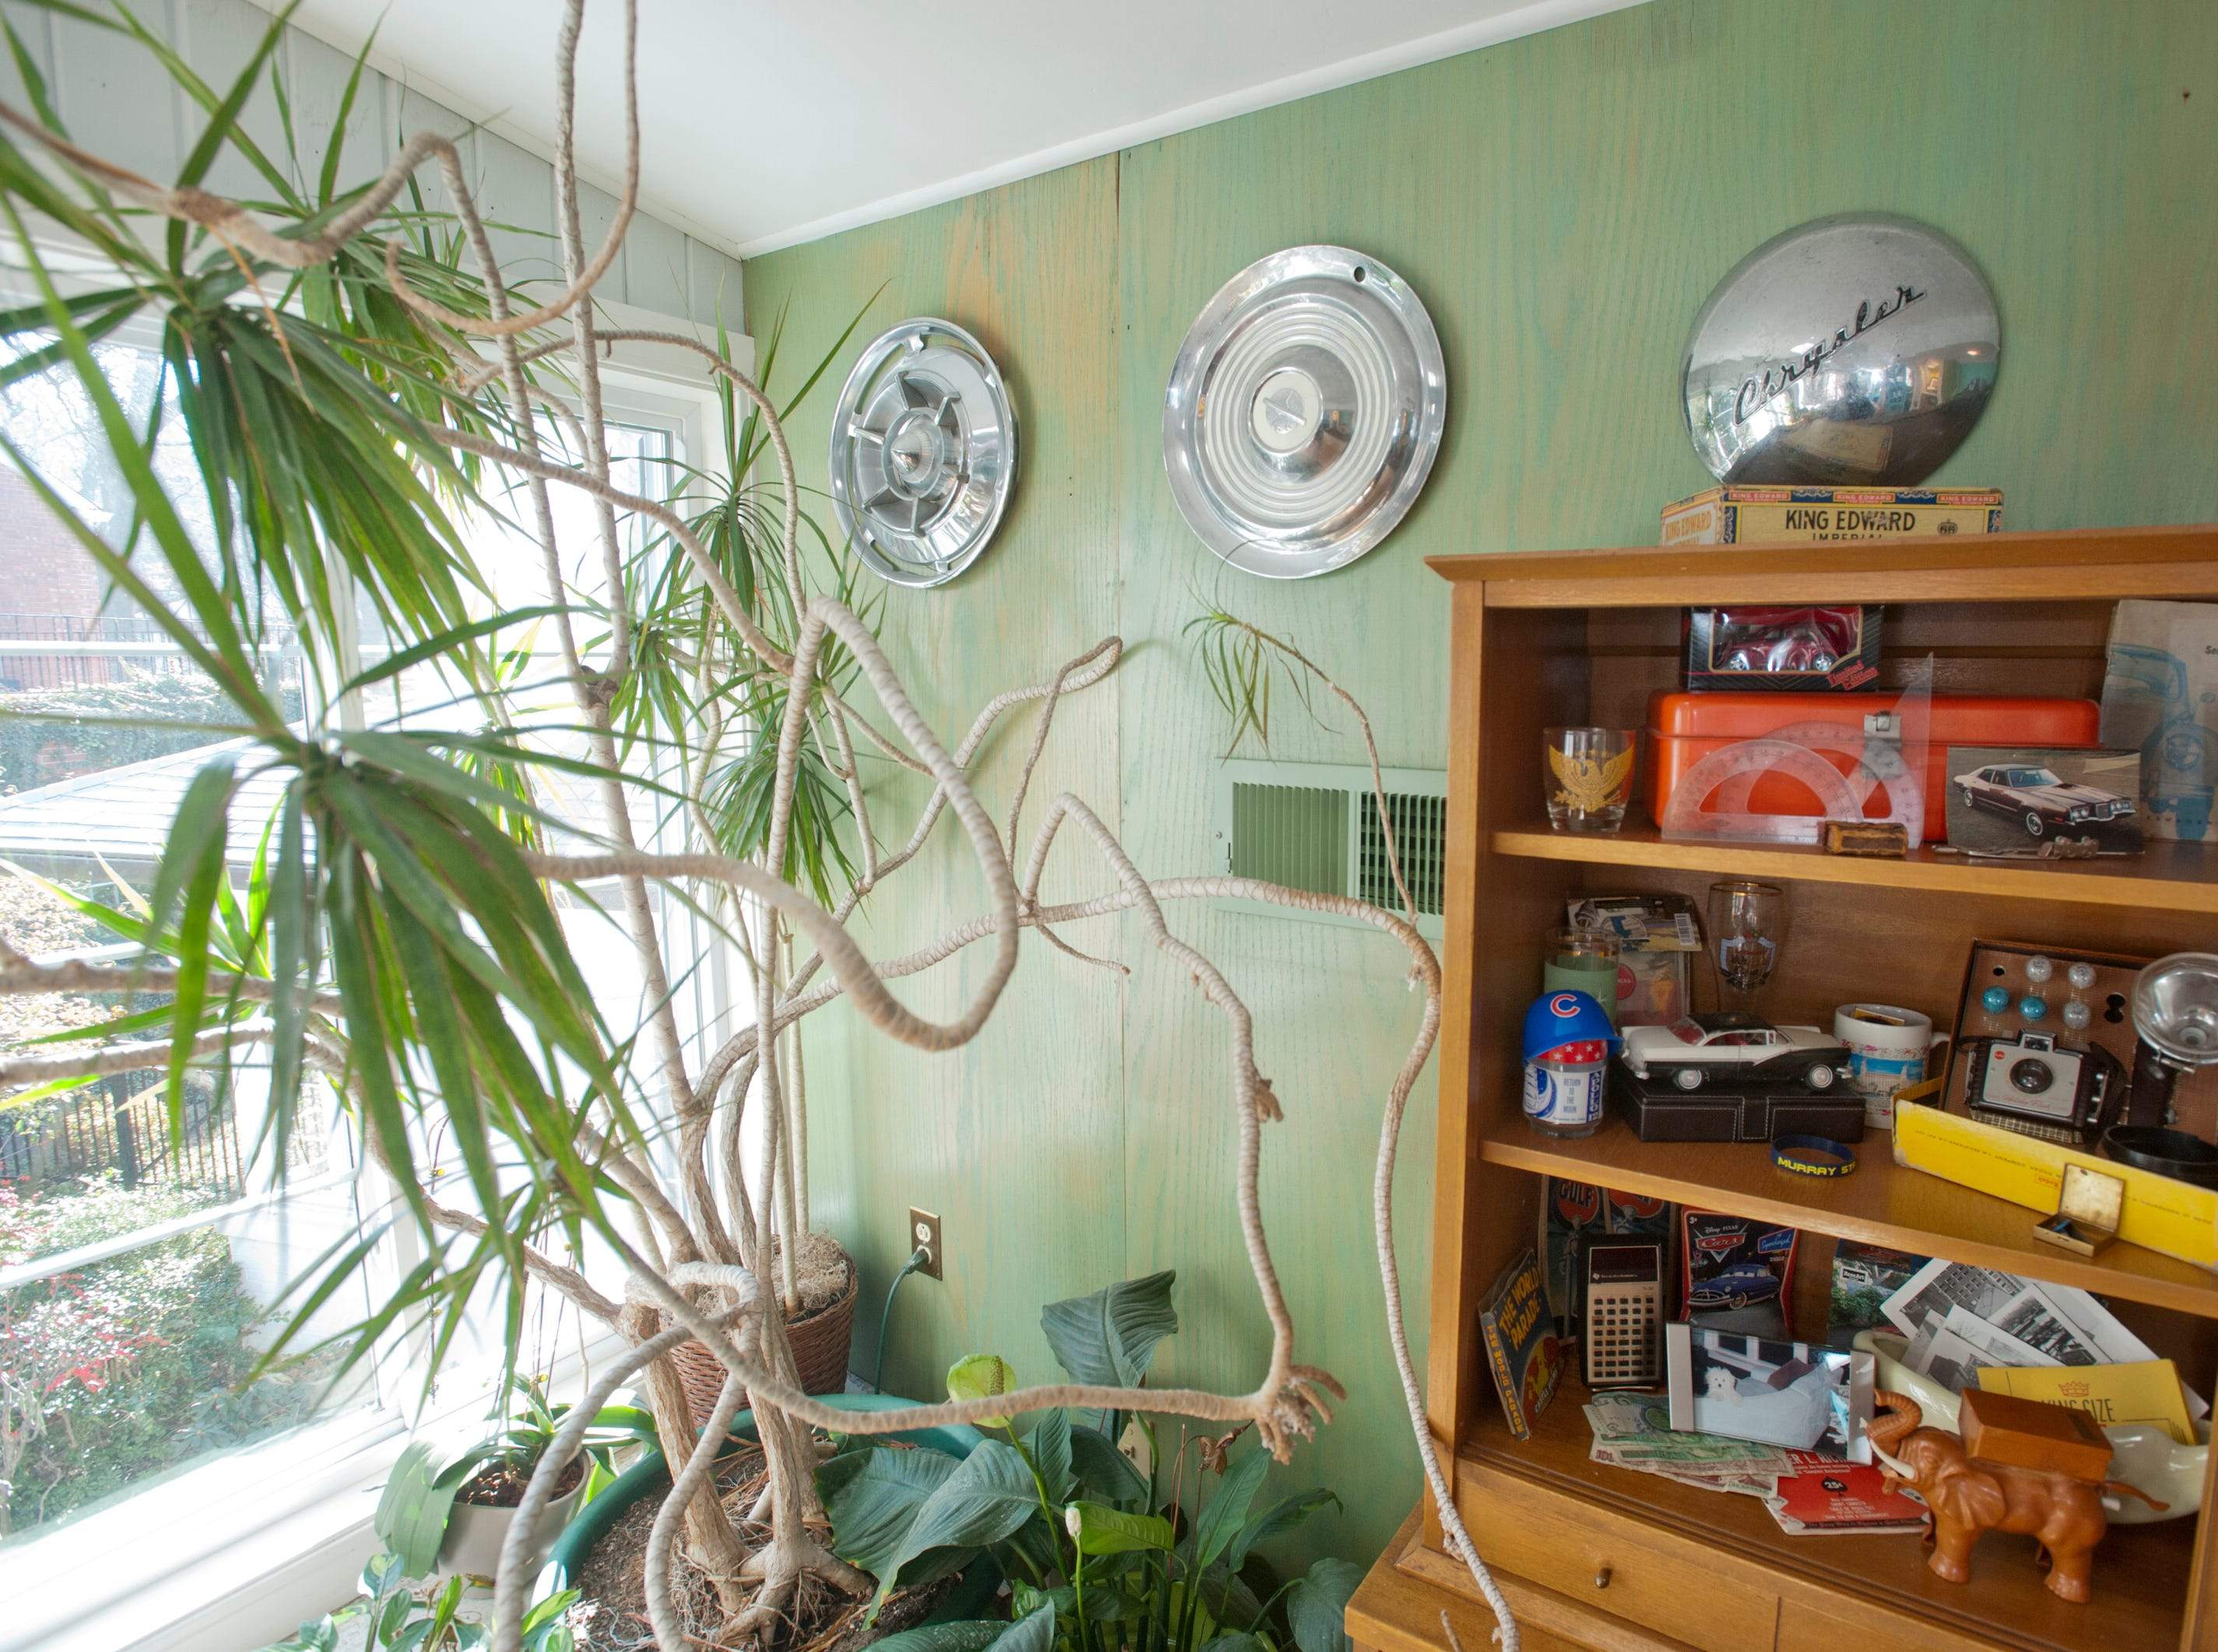 The sun room off the bar on the second floor. The wall is decorated with hubcaps and a cabinet of memorabilia including model cars and a Kodak Brownie camera set.10 December 2018